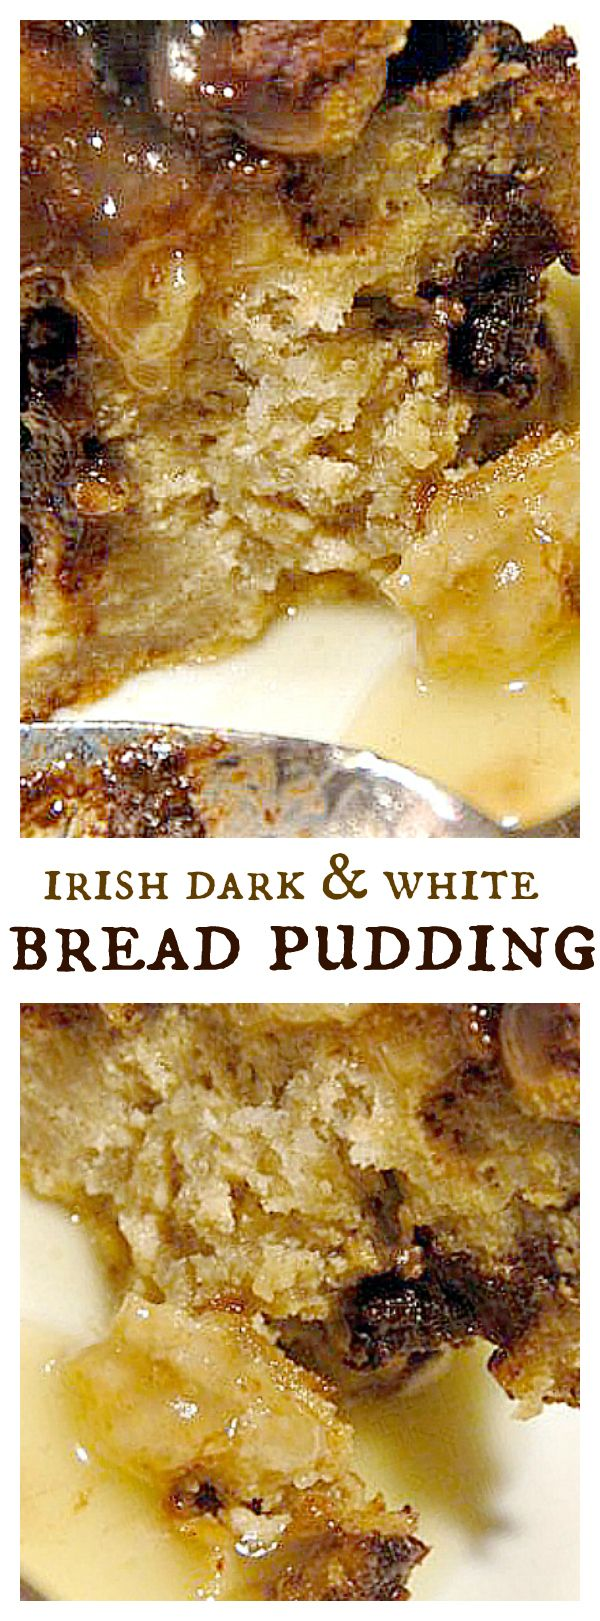 Irish Dark & White Bread Pudding (with chocolate and white chocolate), perfect for the holidays!